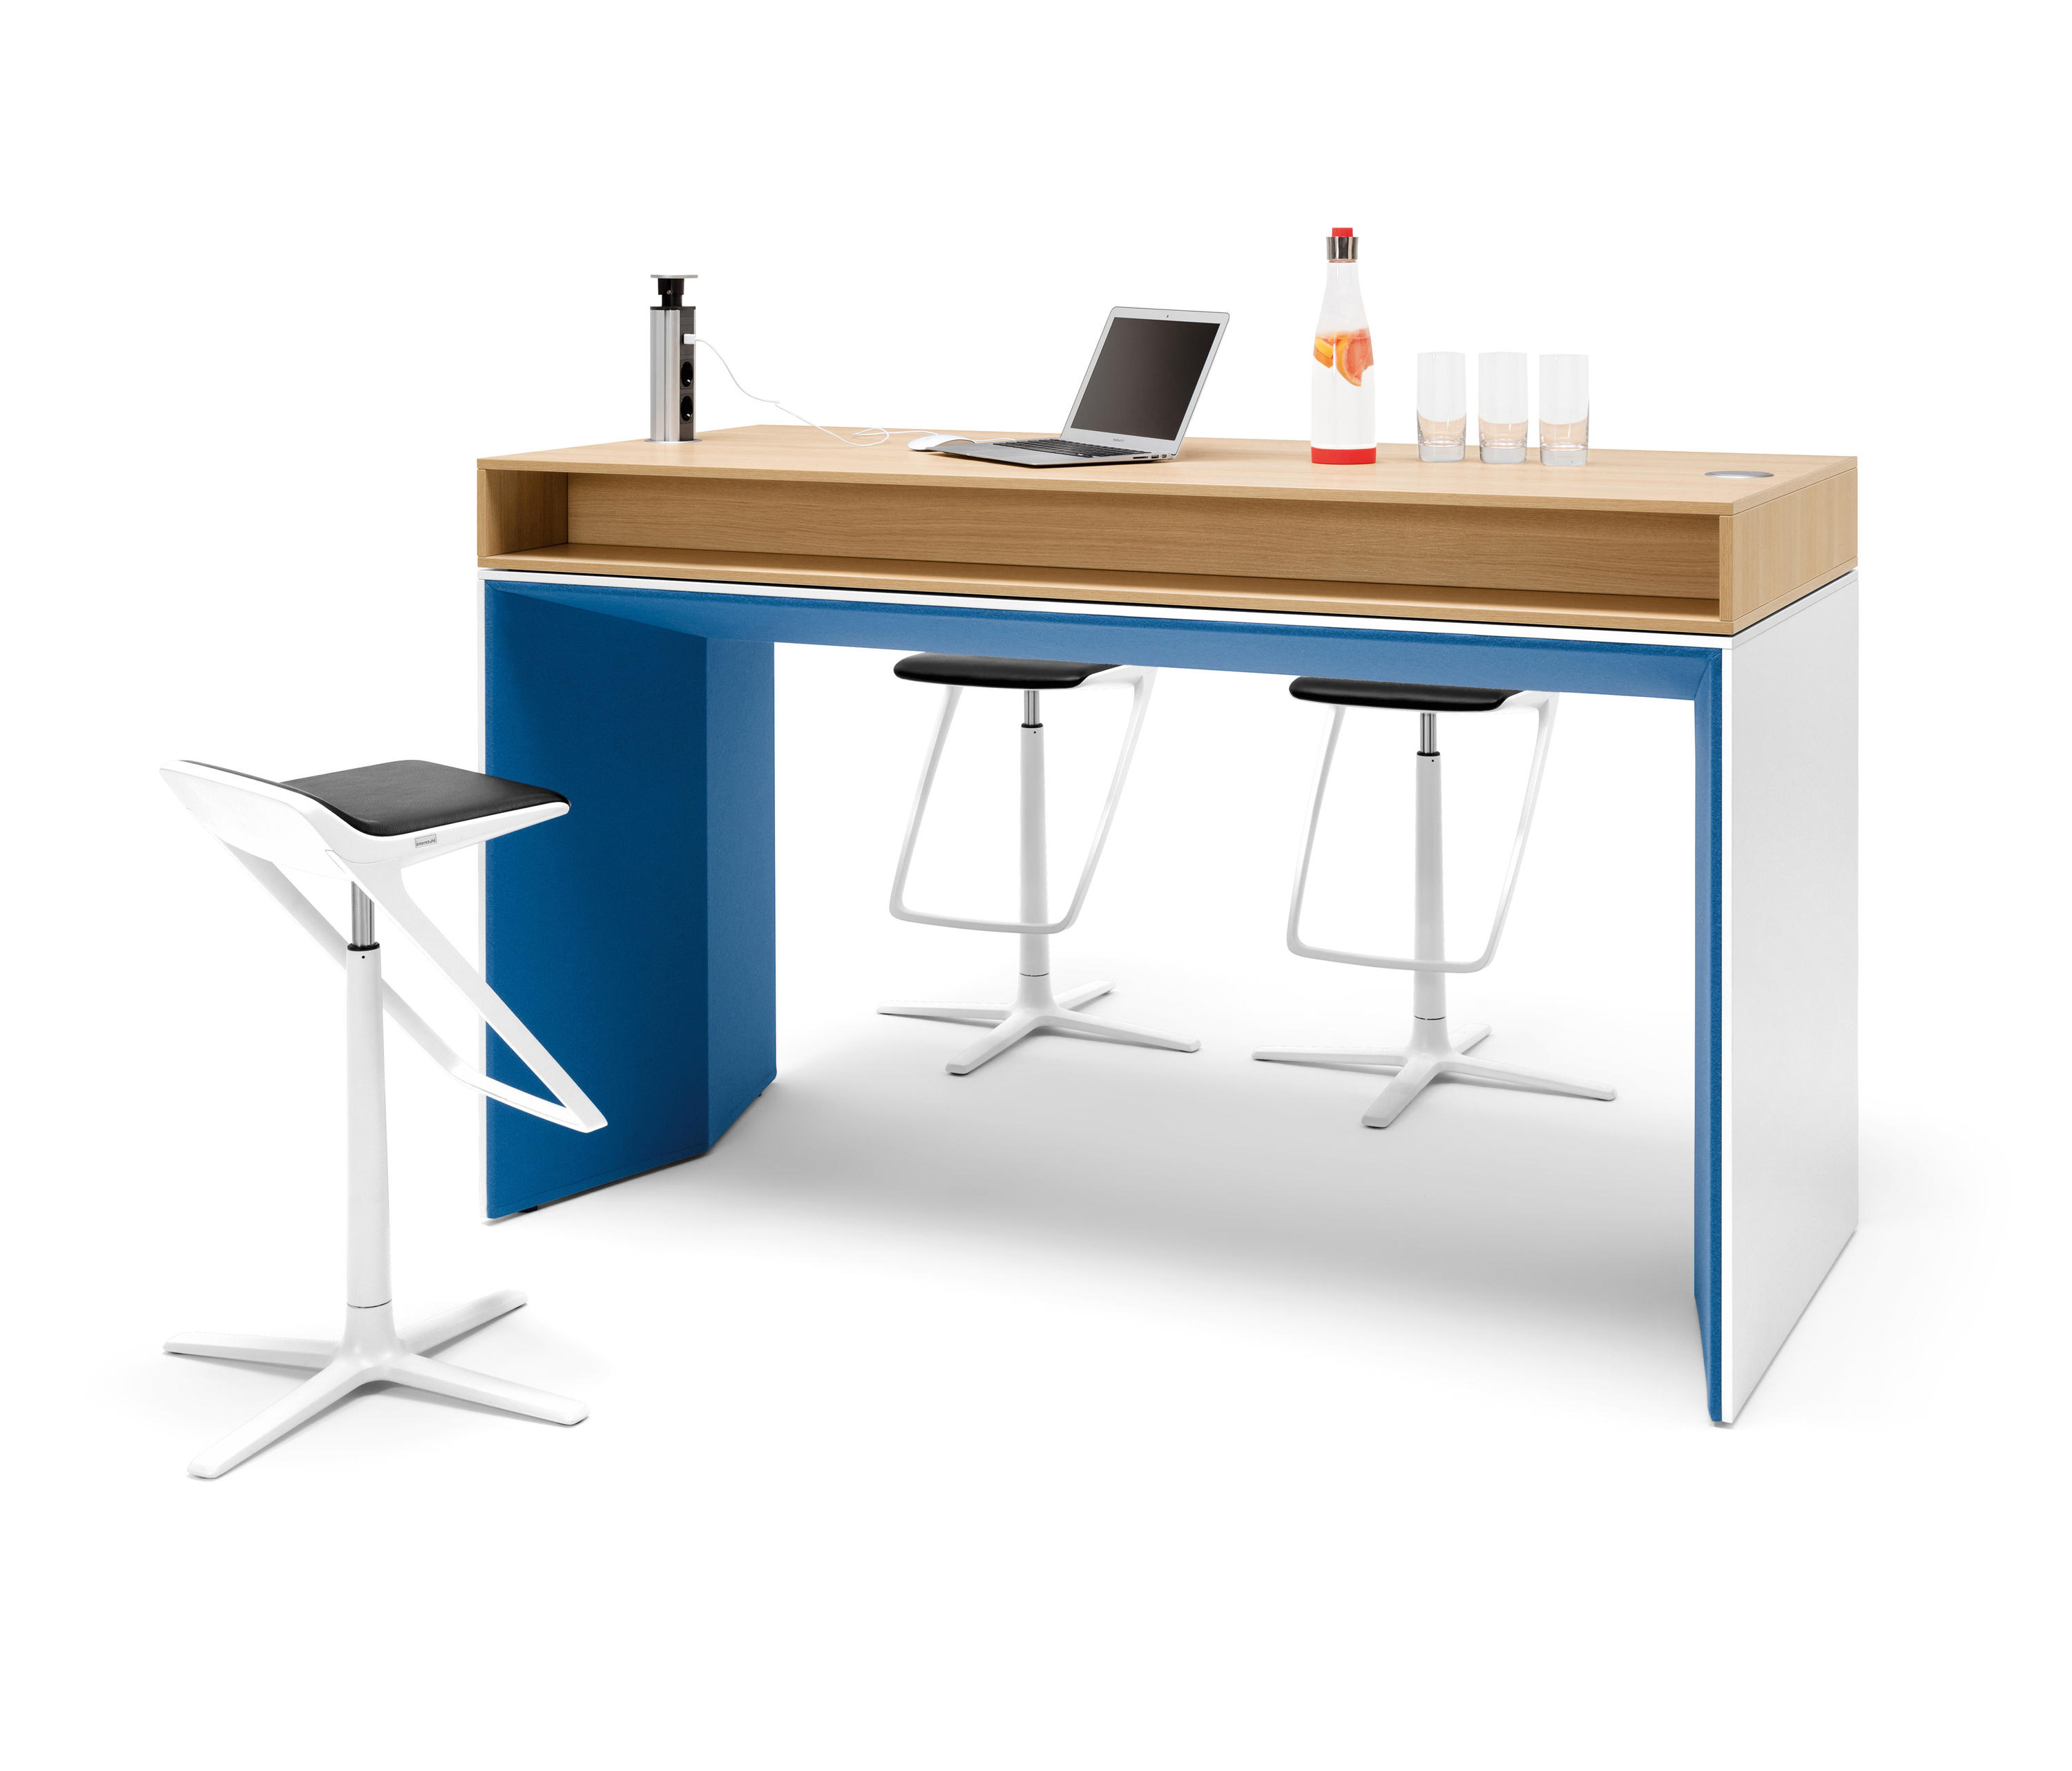 WINEA PLUS | PANELLEG TABEL - Desking systems from WINI Büromöbel ...